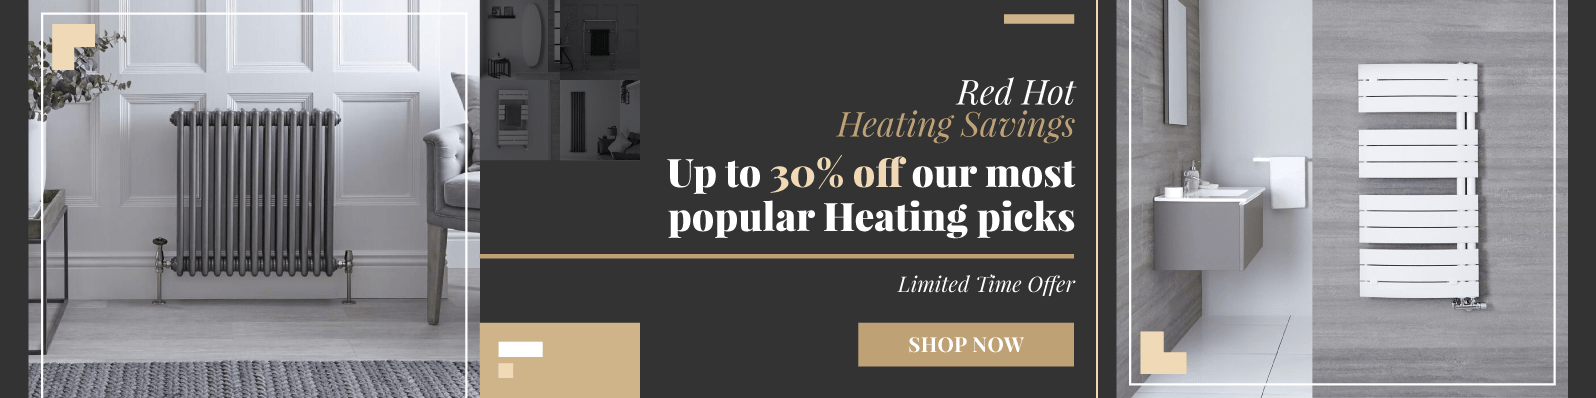 Red Hot Heating Savings Up to 30% off our most popular Heating picks Limited Time Offer Shop Now